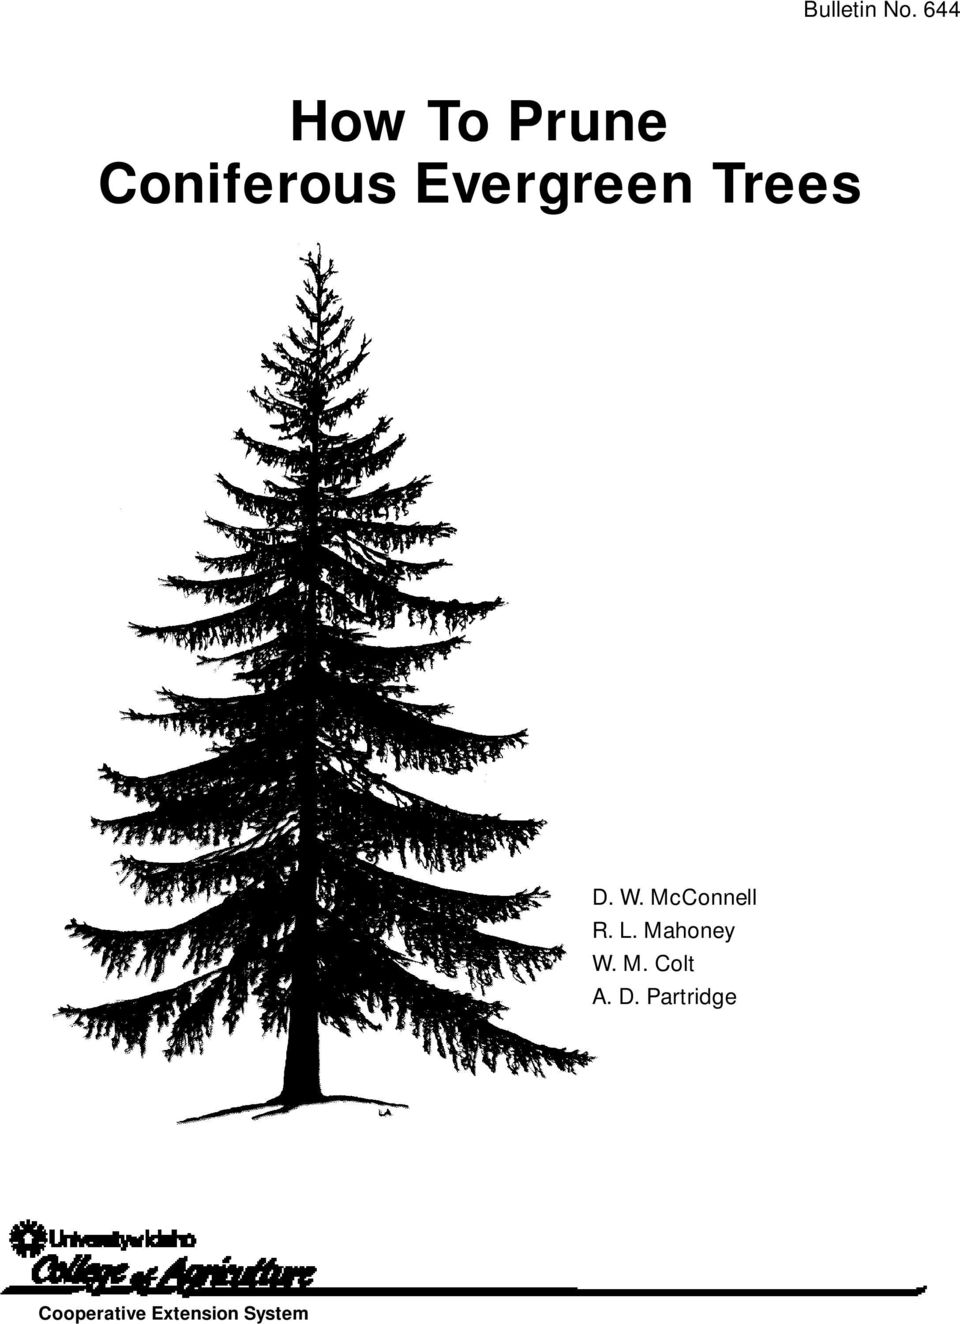 Evergreen Trees D. W. McConnell R.